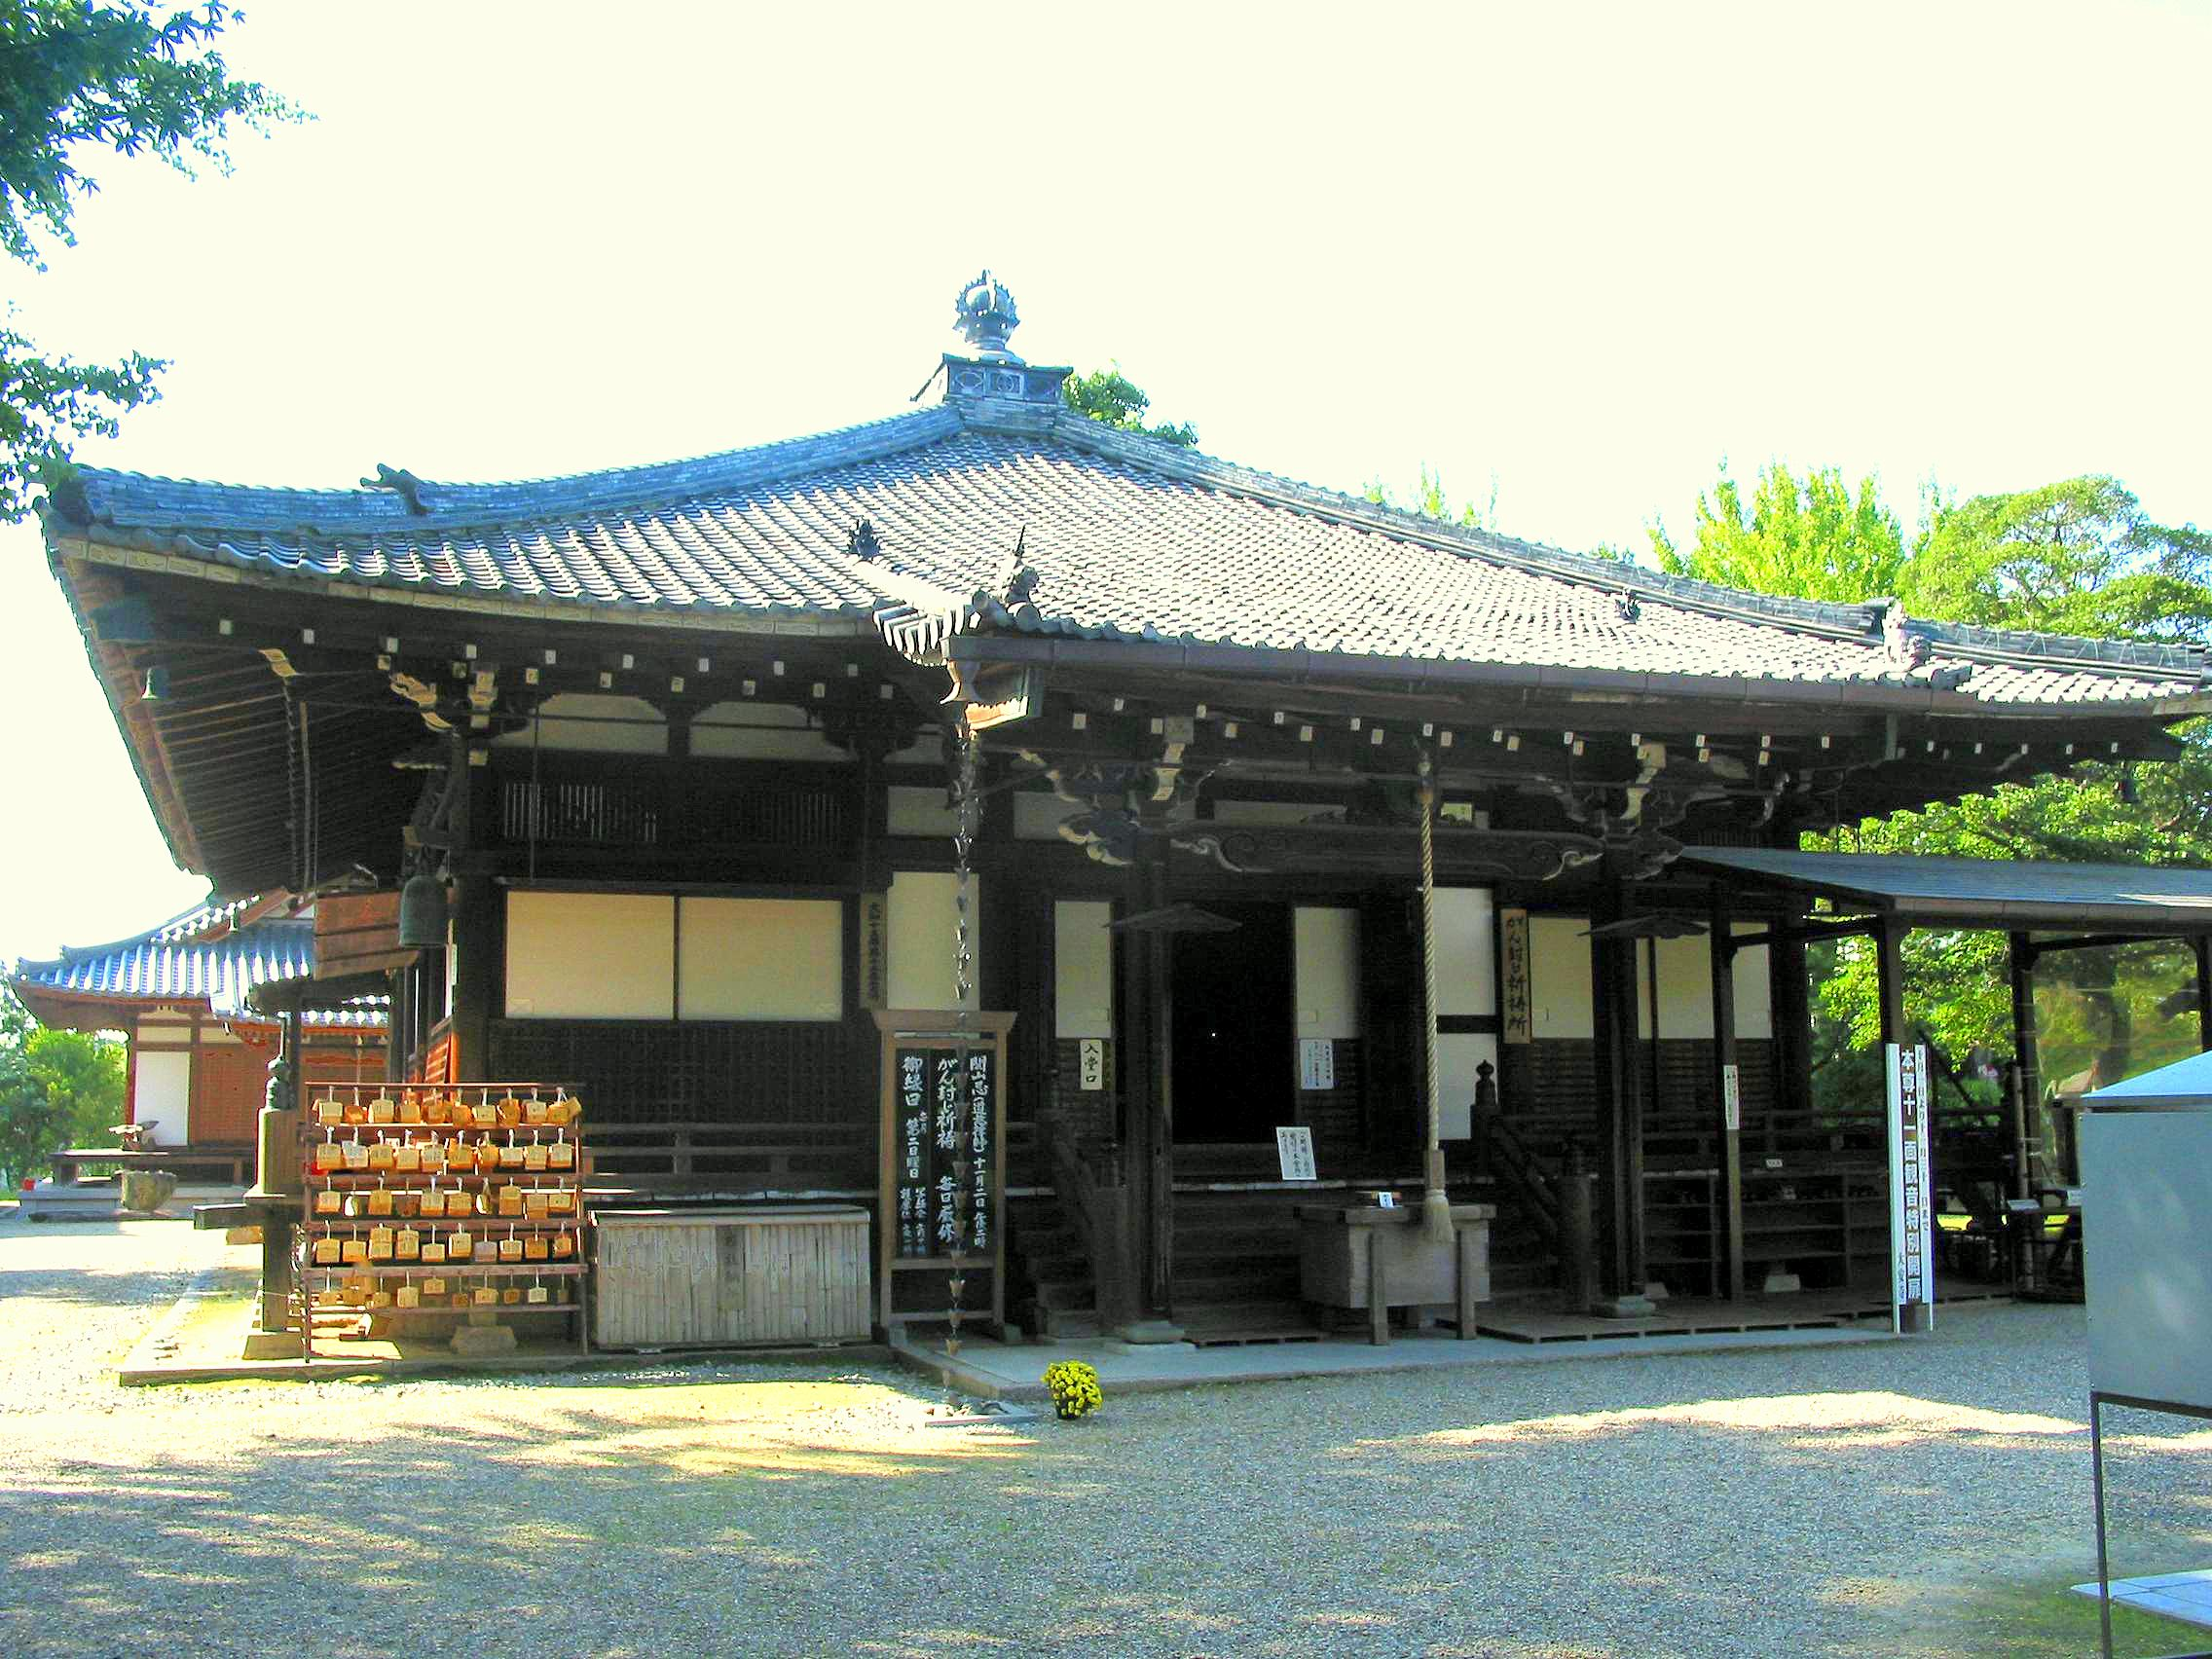 Daian-ji Hondō at Nara, Nara Pref., Japan.